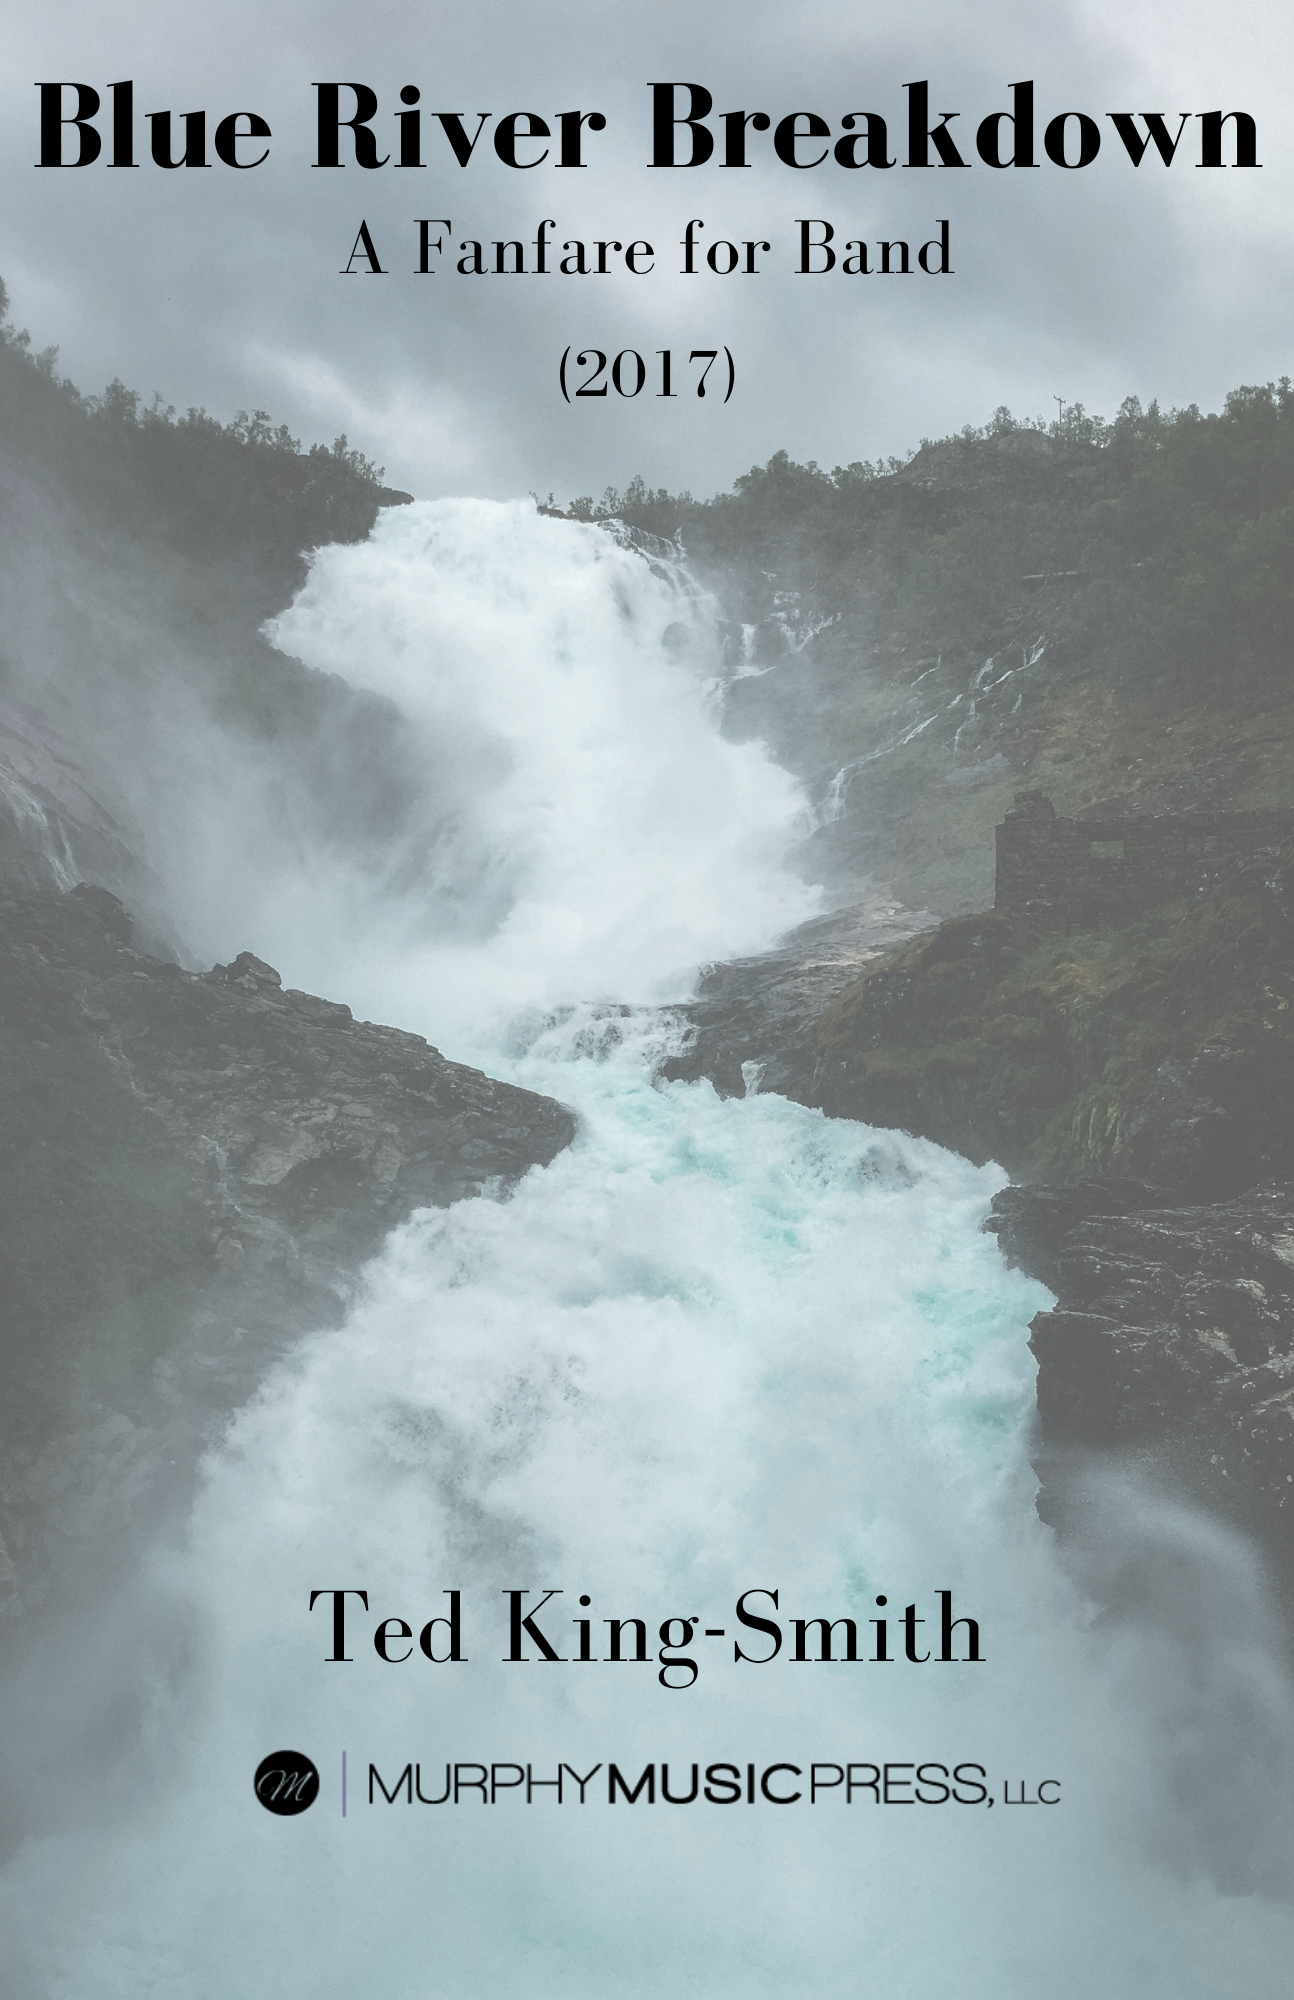 Blue River Breakdown by Ted King-Smith